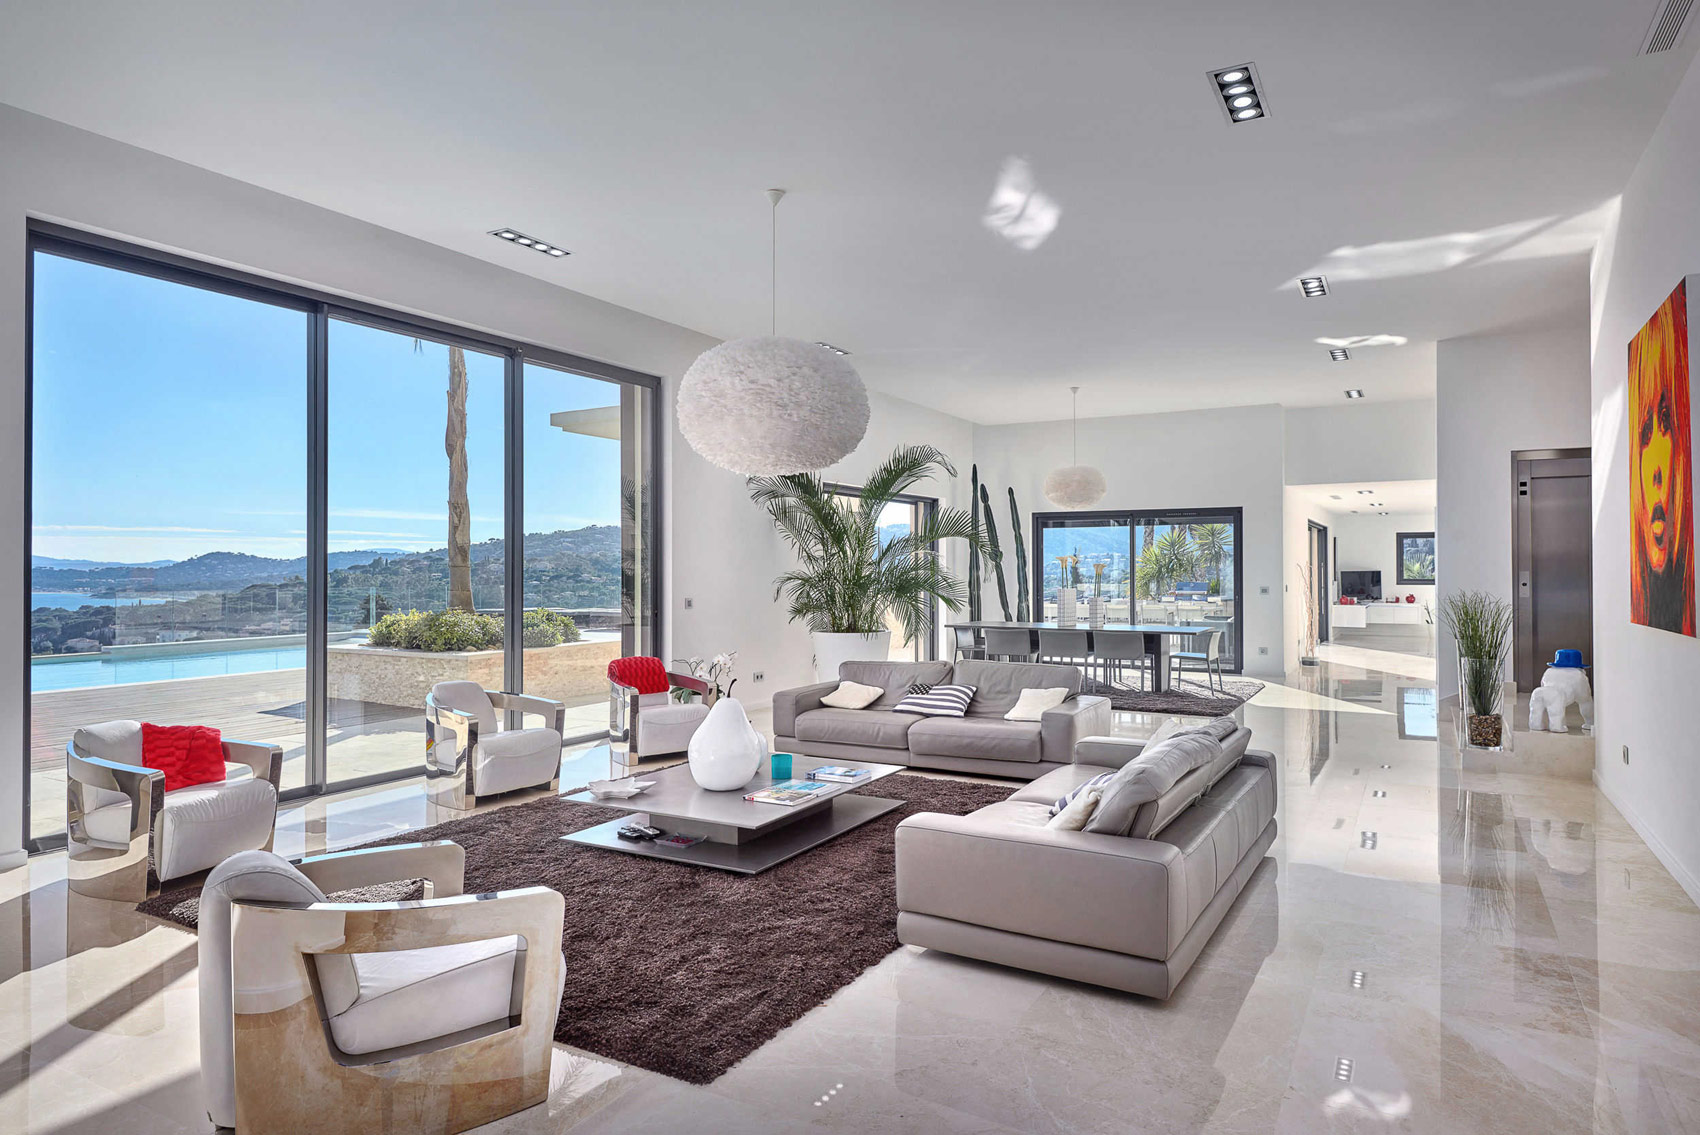 Use A Property Sourcer To Find Your South Of France Luxury Home